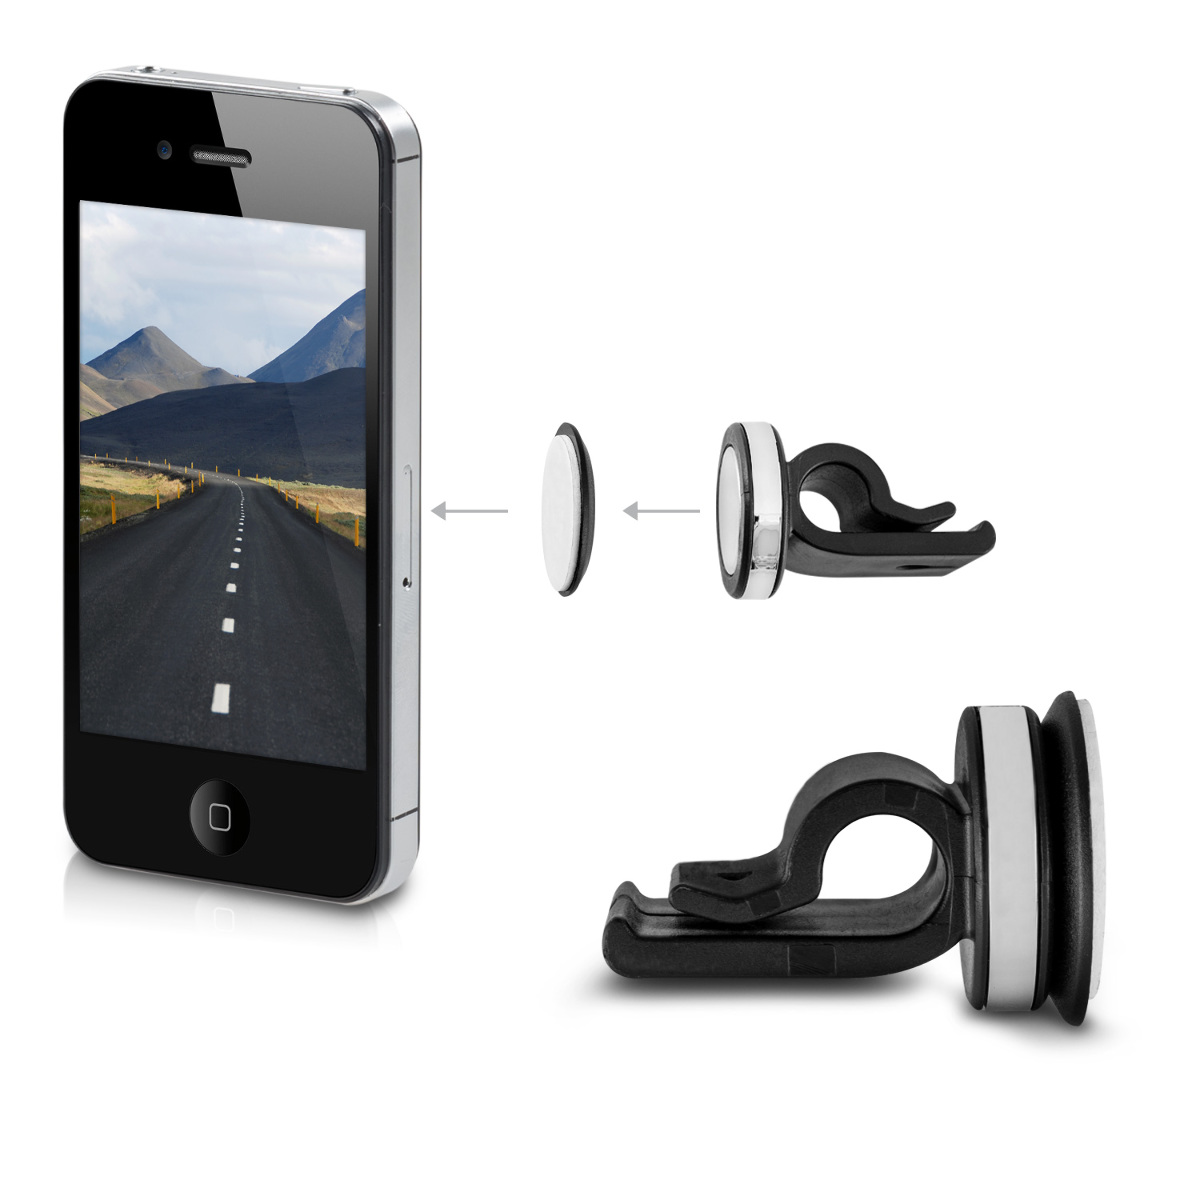 kwmobile support pour voiture aimant pour apple iphone 4 berlin. Black Bedroom Furniture Sets. Home Design Ideas